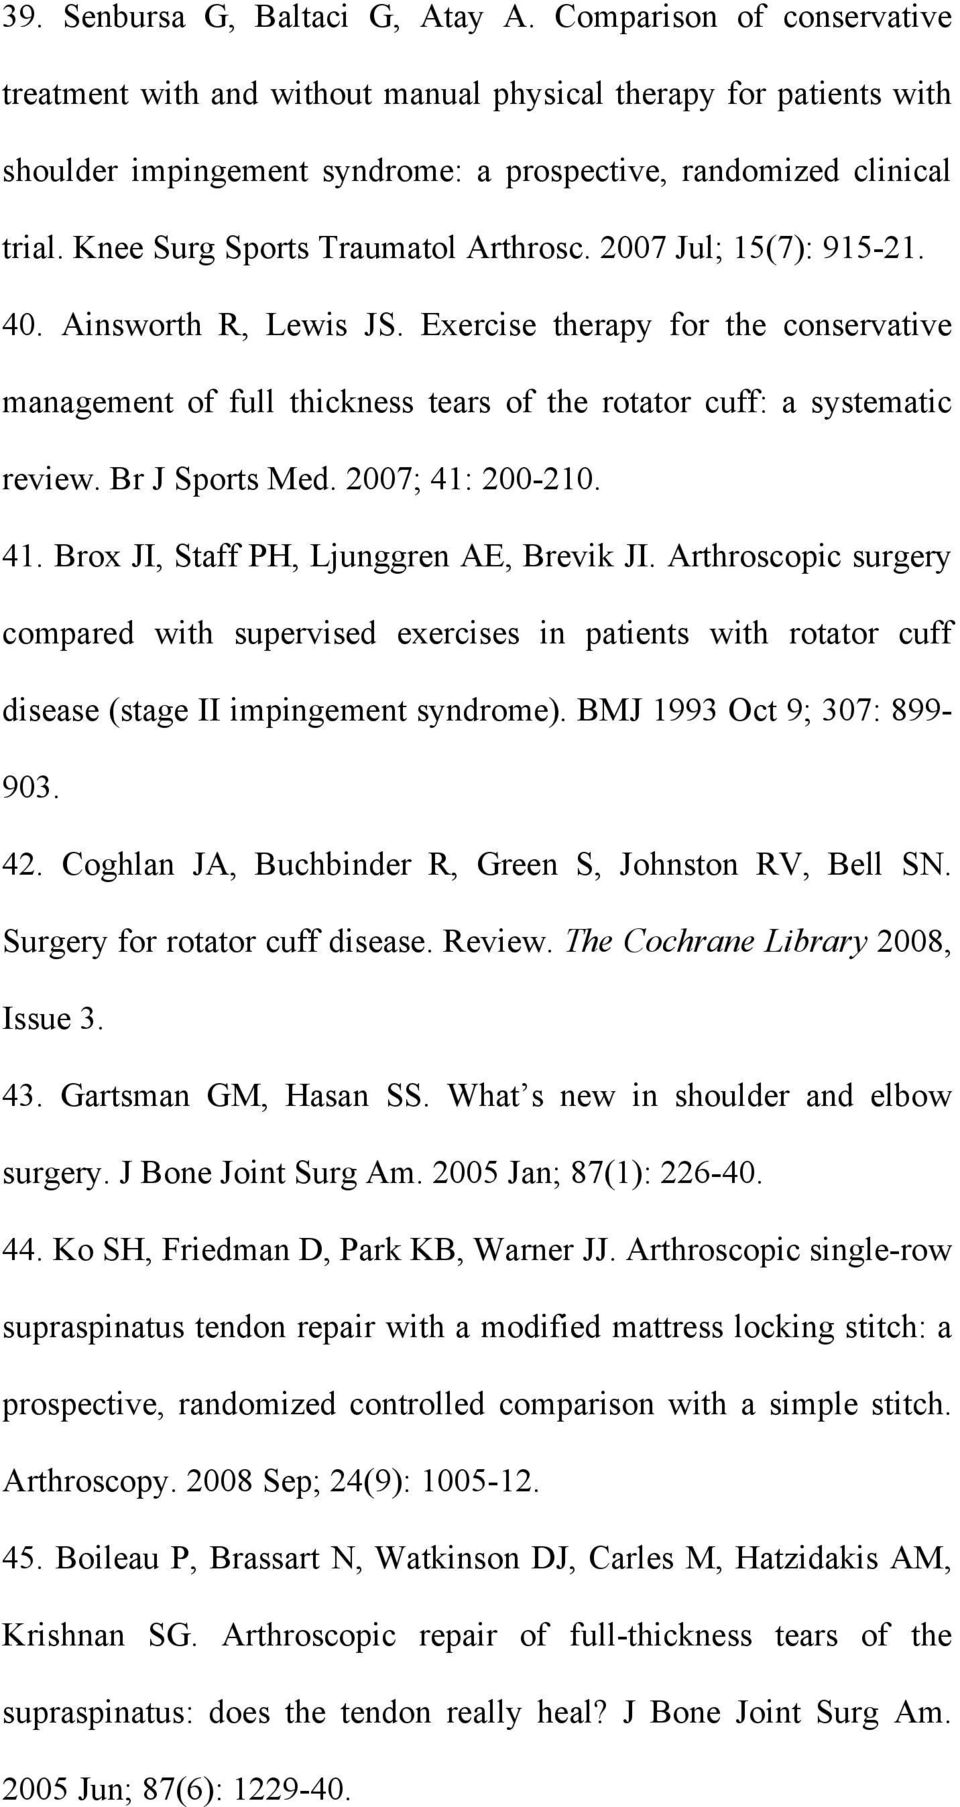 Knee Surg Sports Traumatol Arthrosc. 2007 Jul; 15(7): 915-21. 40. Ainsworth R, Lewis JS.